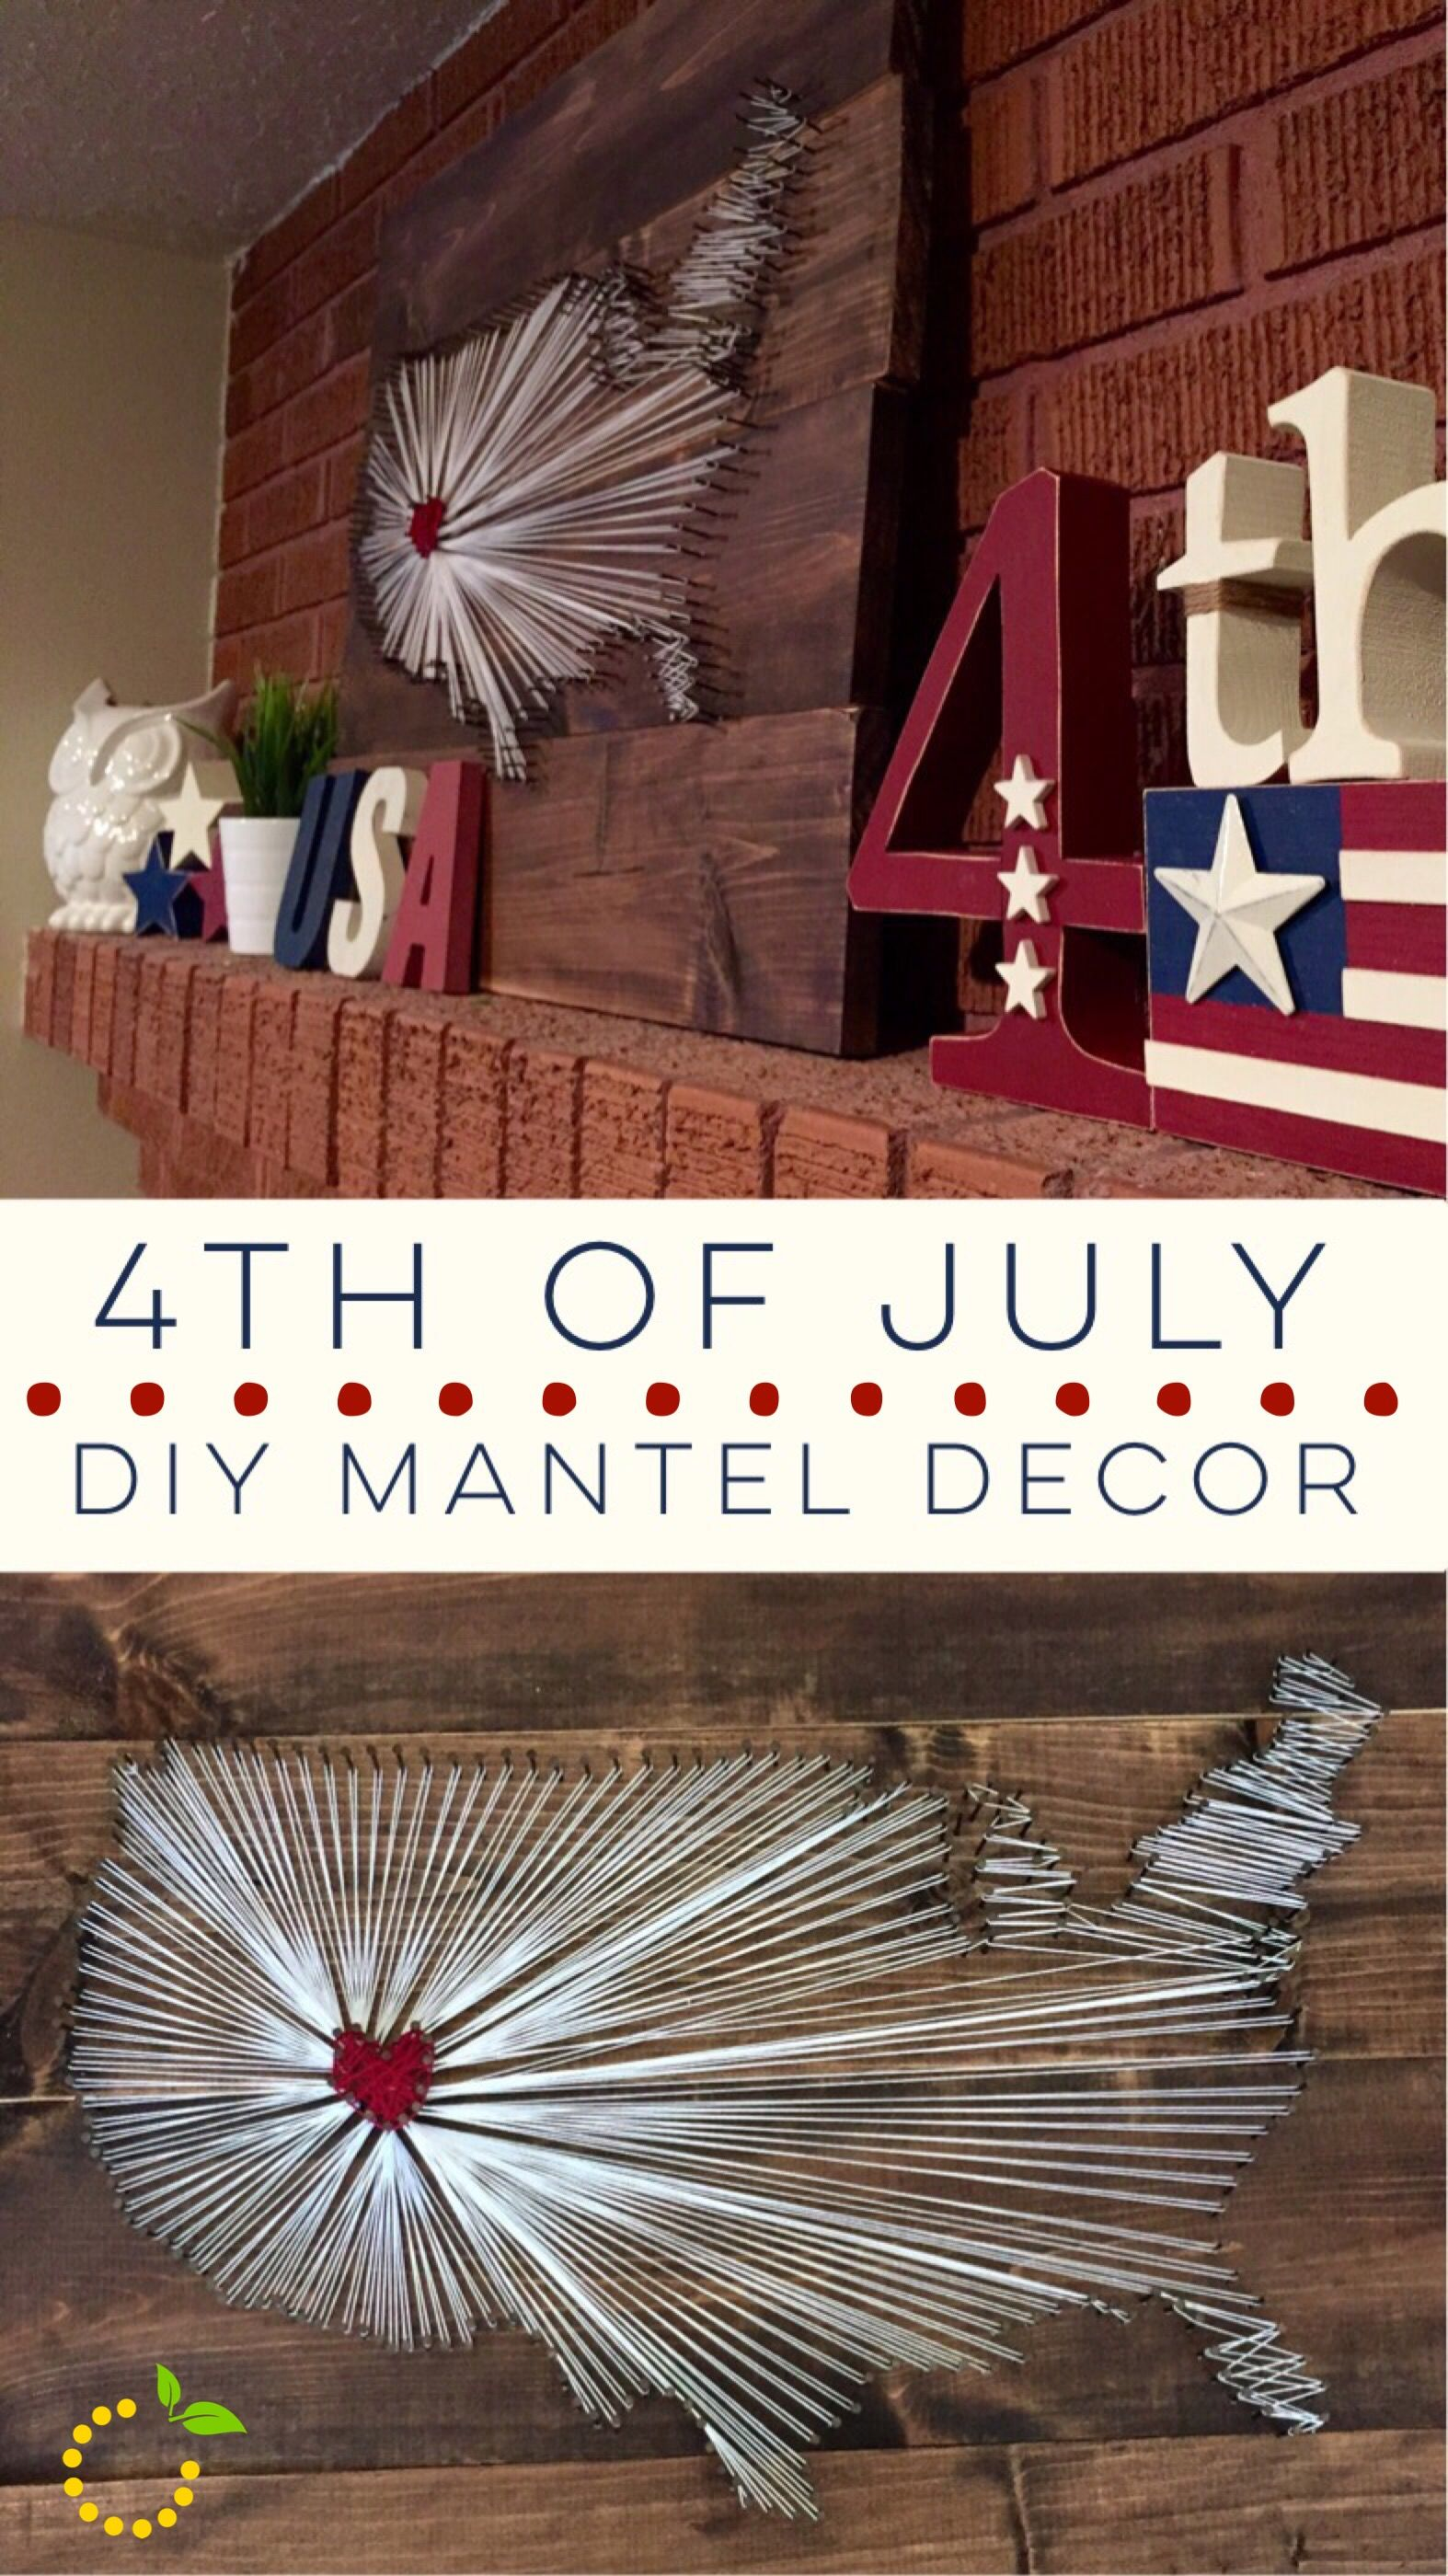 4th of july mantel decor craft ideas fourth of july decor 4th of july decorations july crafts. Black Bedroom Furniture Sets. Home Design Ideas